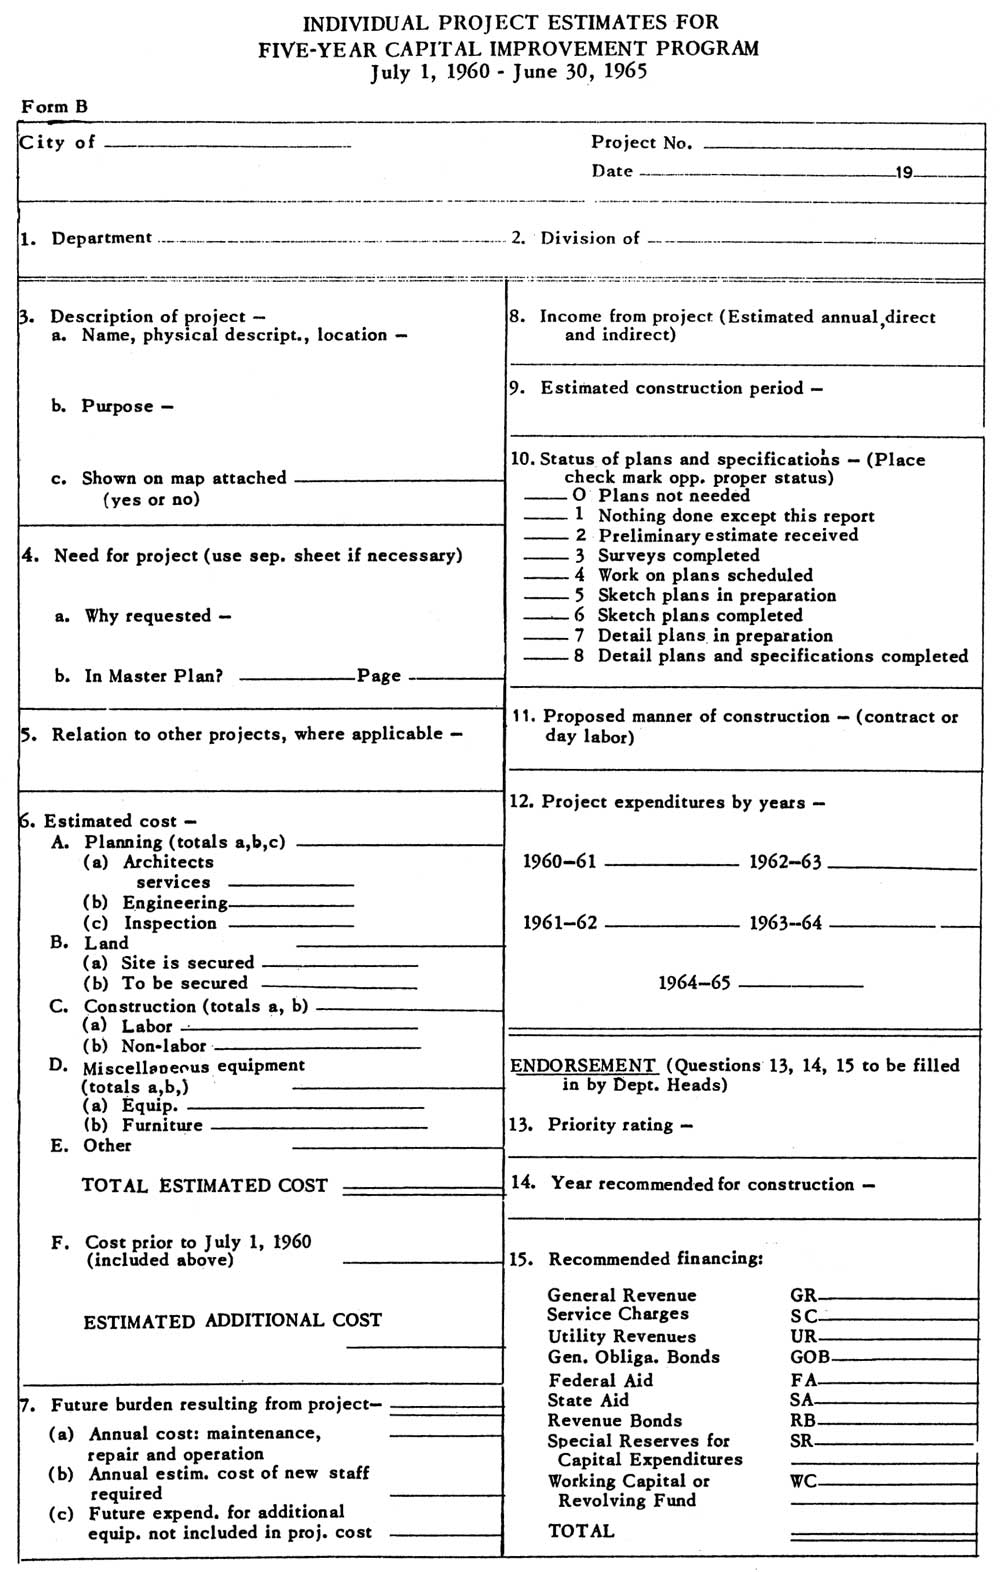 PAS Report 151, Figure B: Individual Project Assessments for Five-Year Capital Improvement Program, July 1, 1960–June 30, 1965.